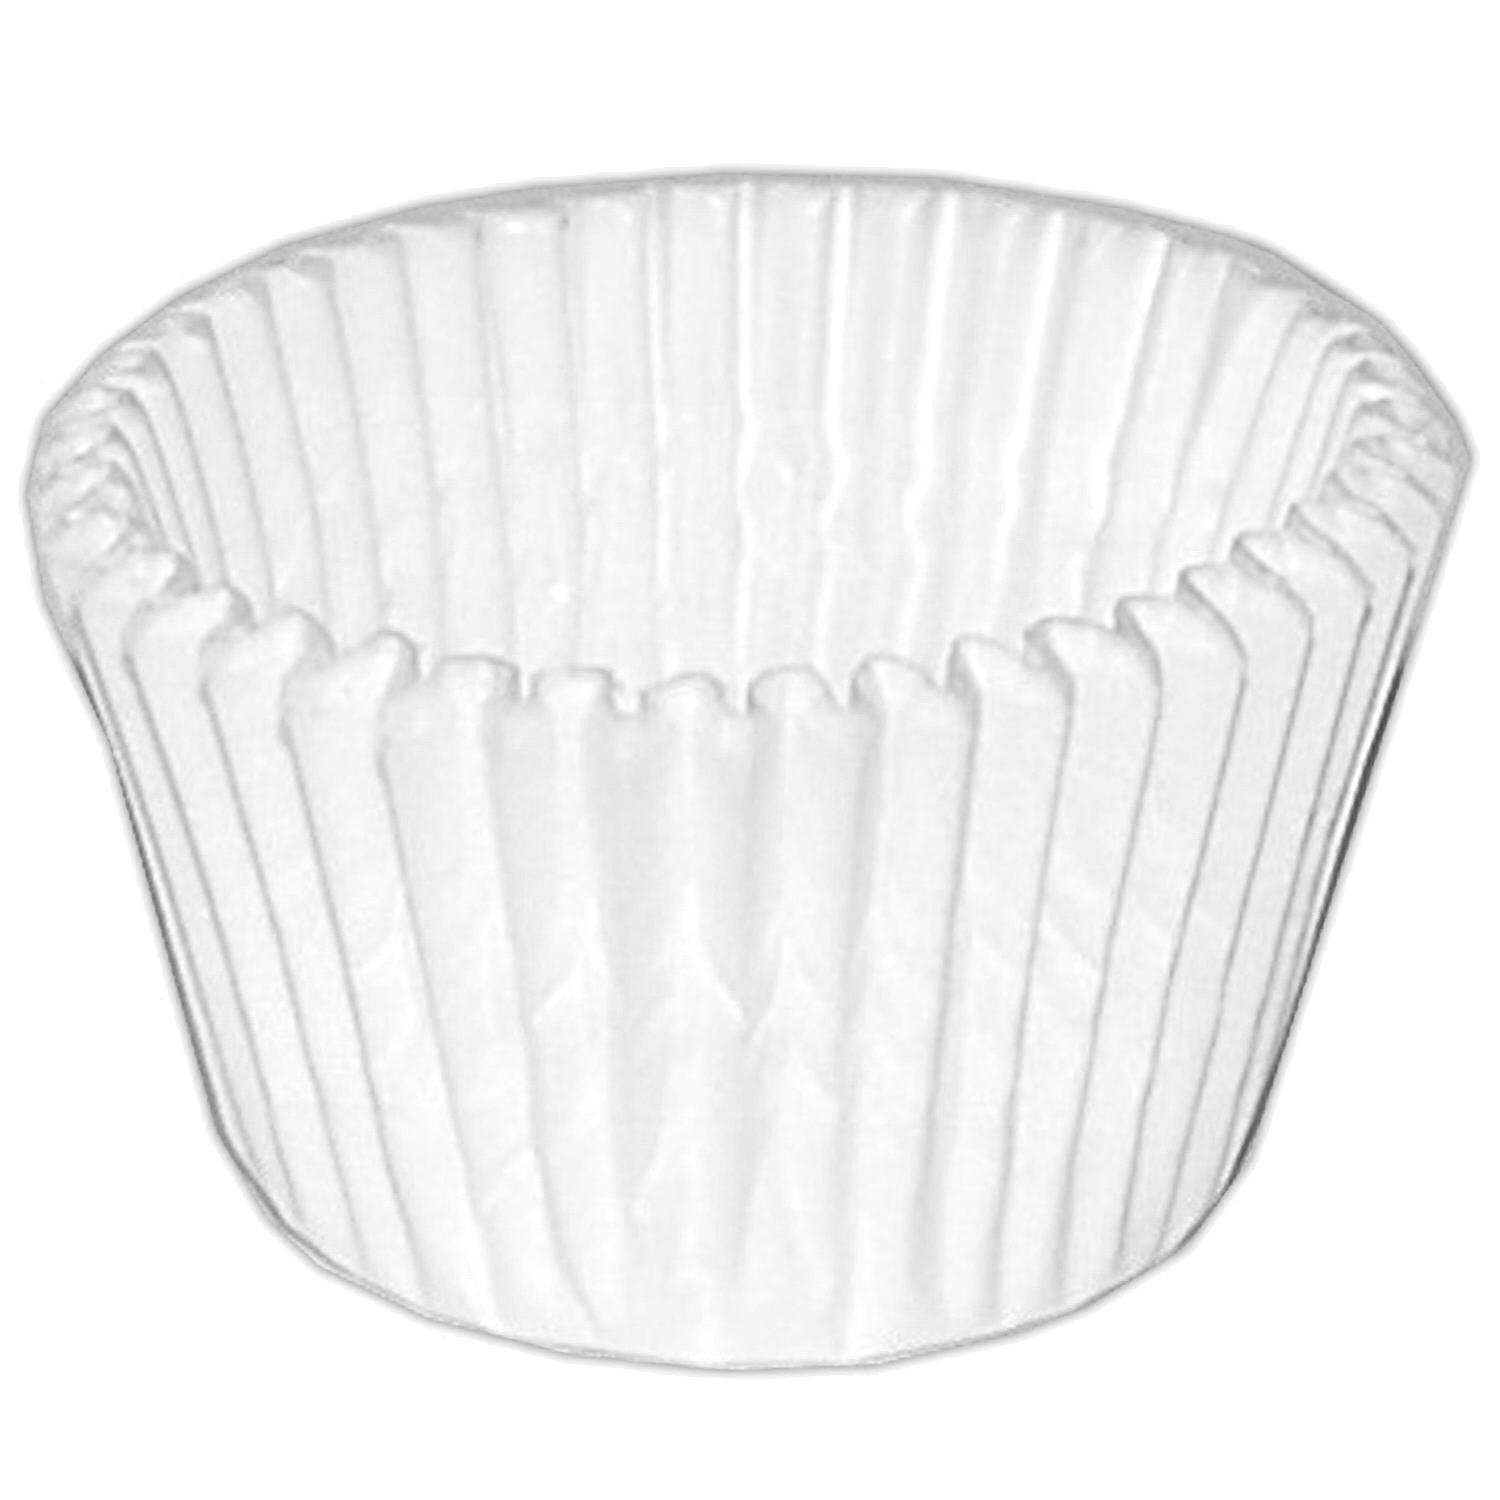 30 Easy-Bake Replacement Cupcake Liners for the Ultimate Oven Cupcake Pan Hasbro